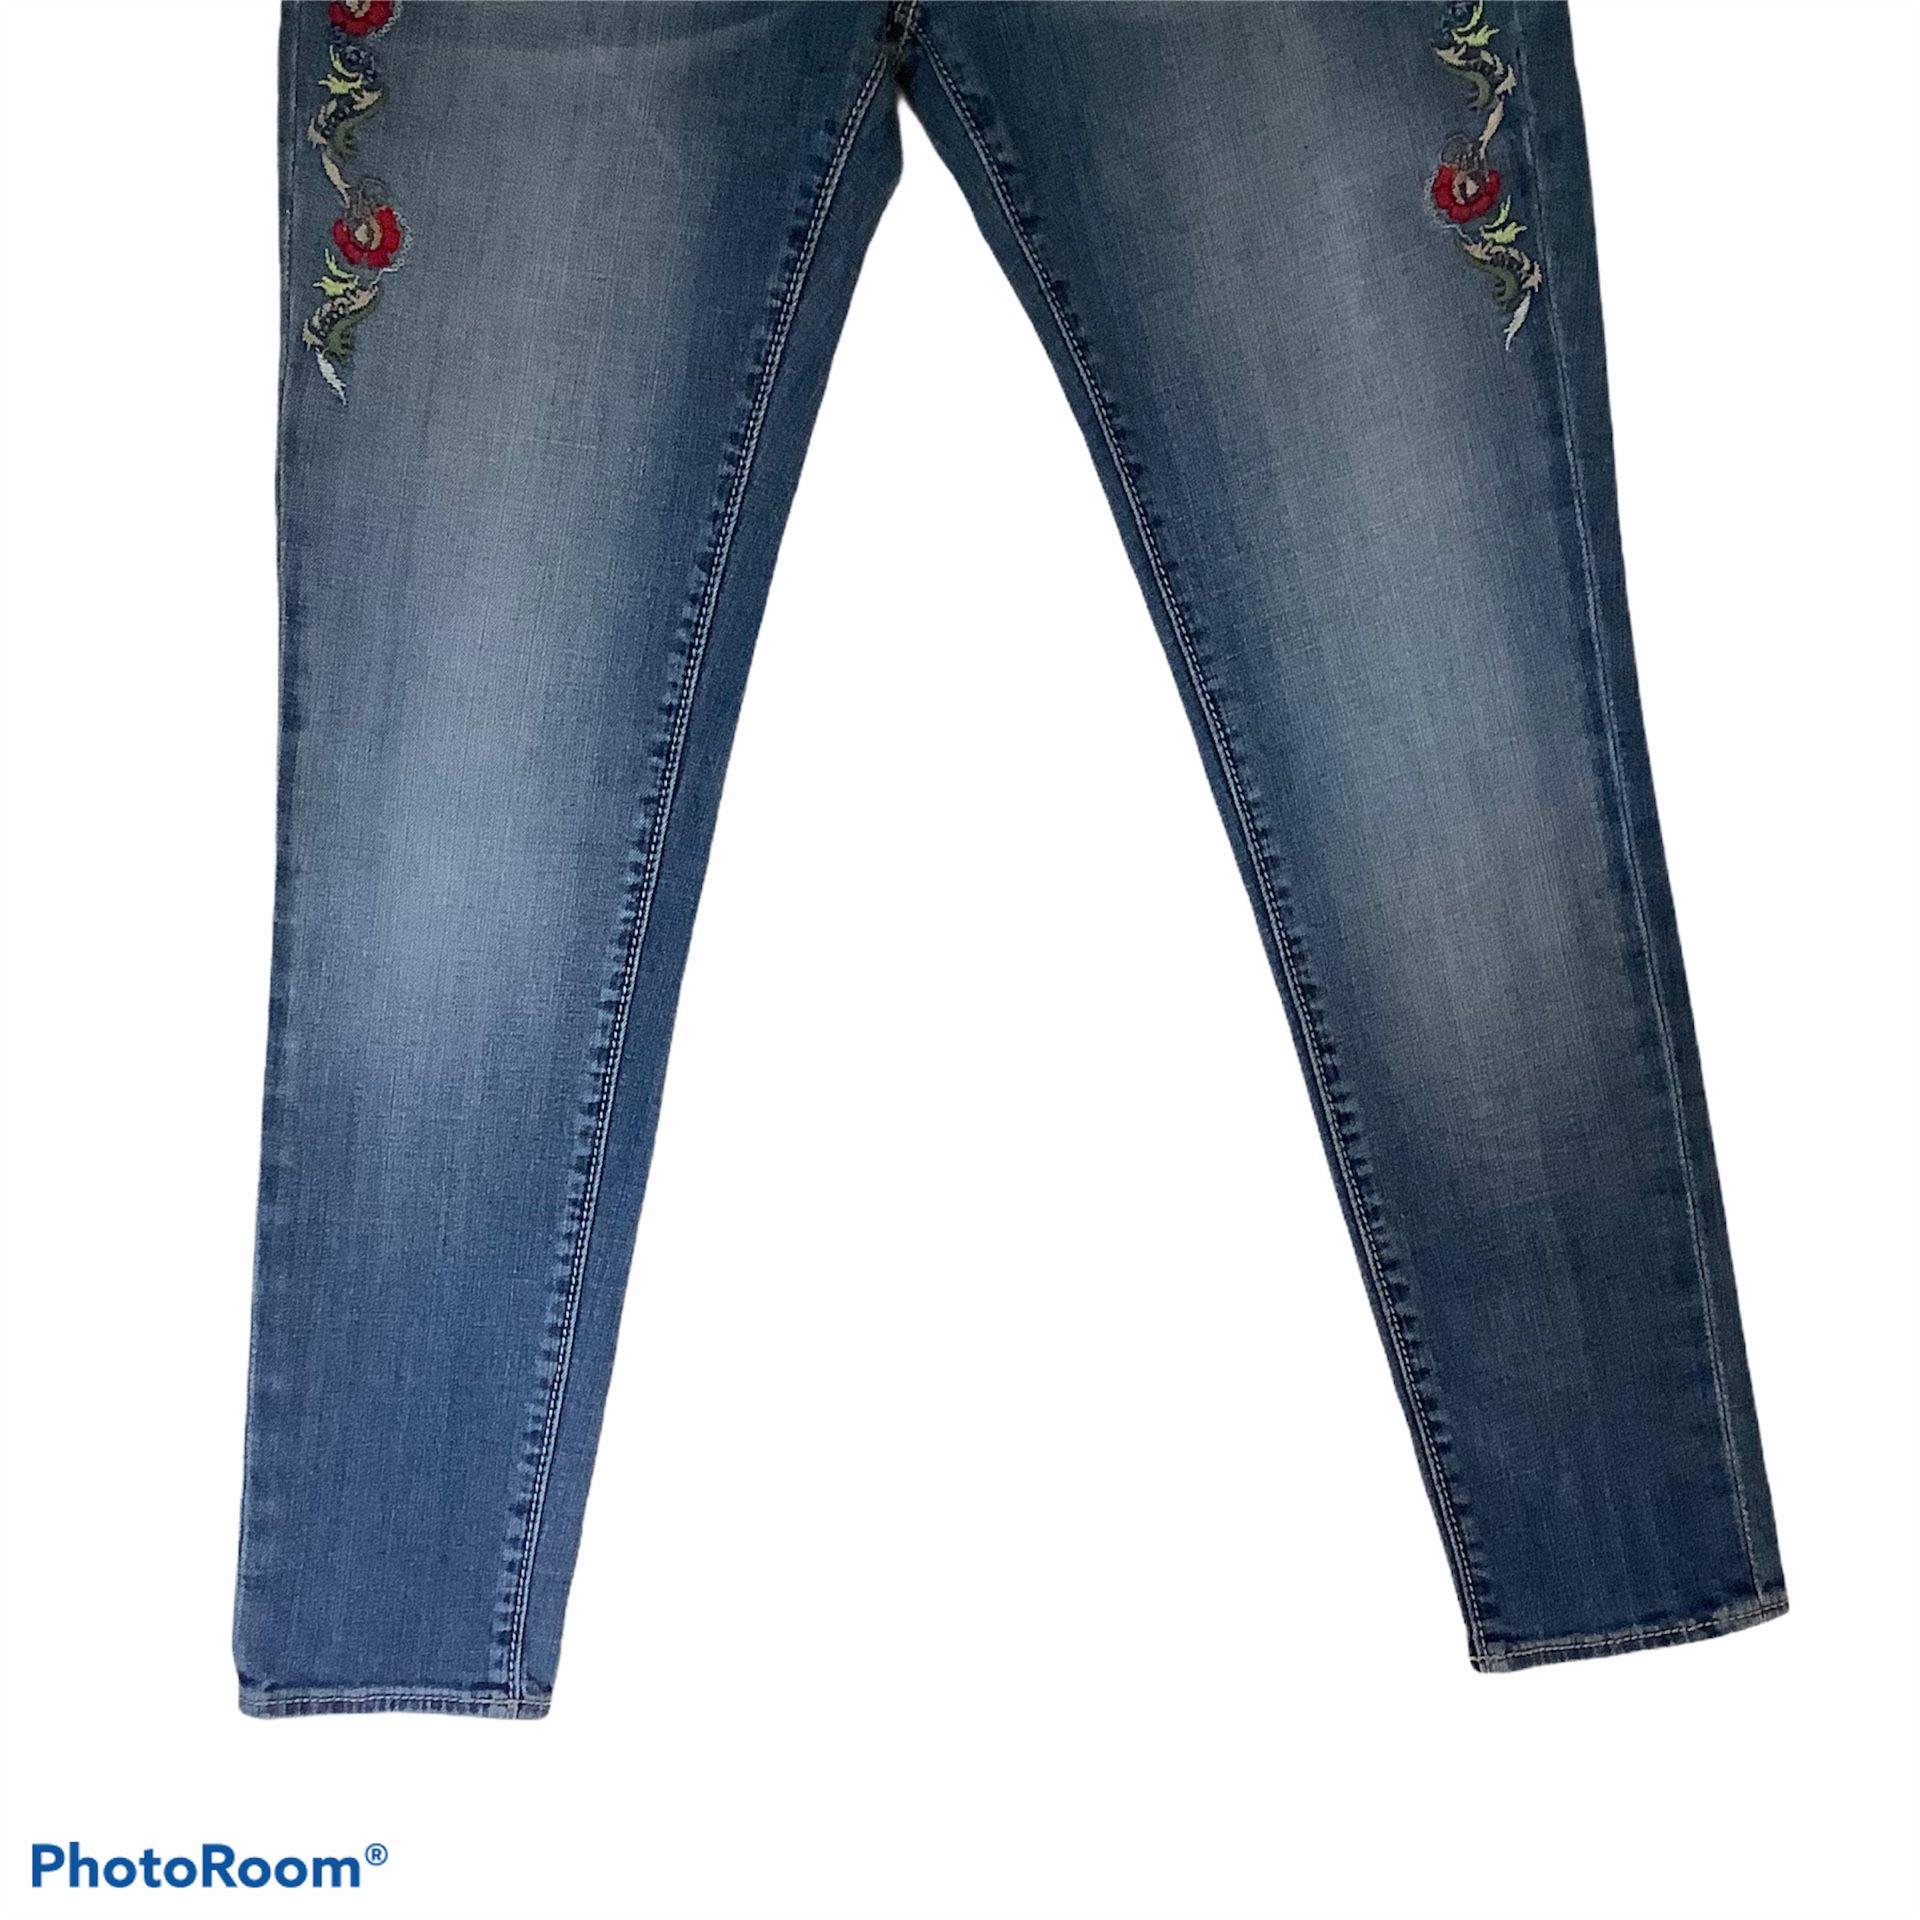 Driftwood Embroidered Jeans